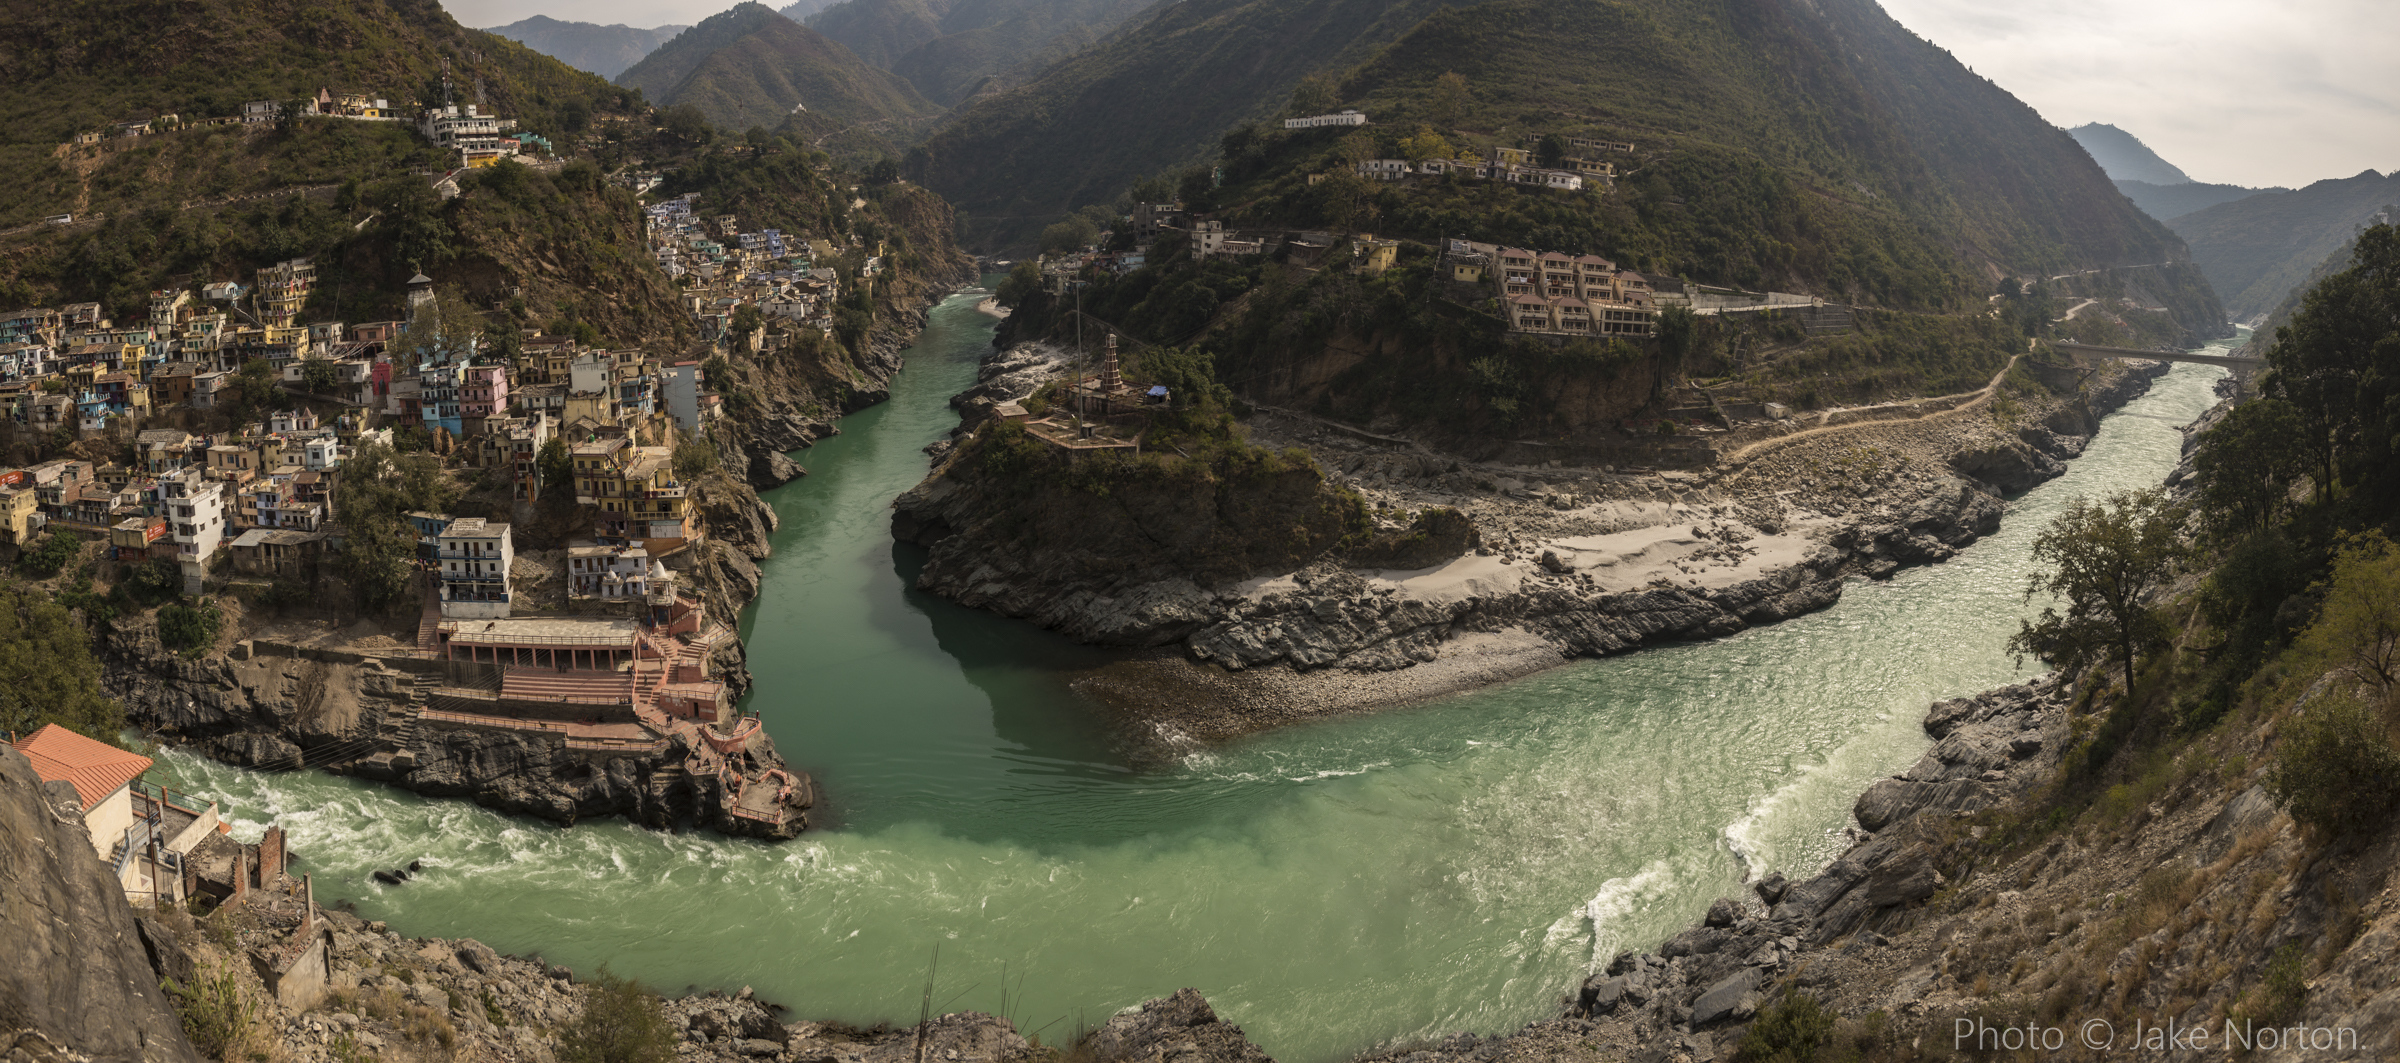 The sacred confluence of Devprayag, where the Bhagirathi and Alaknanda Rivers converge to form the Ganges proper. Photo © Jake Norton.